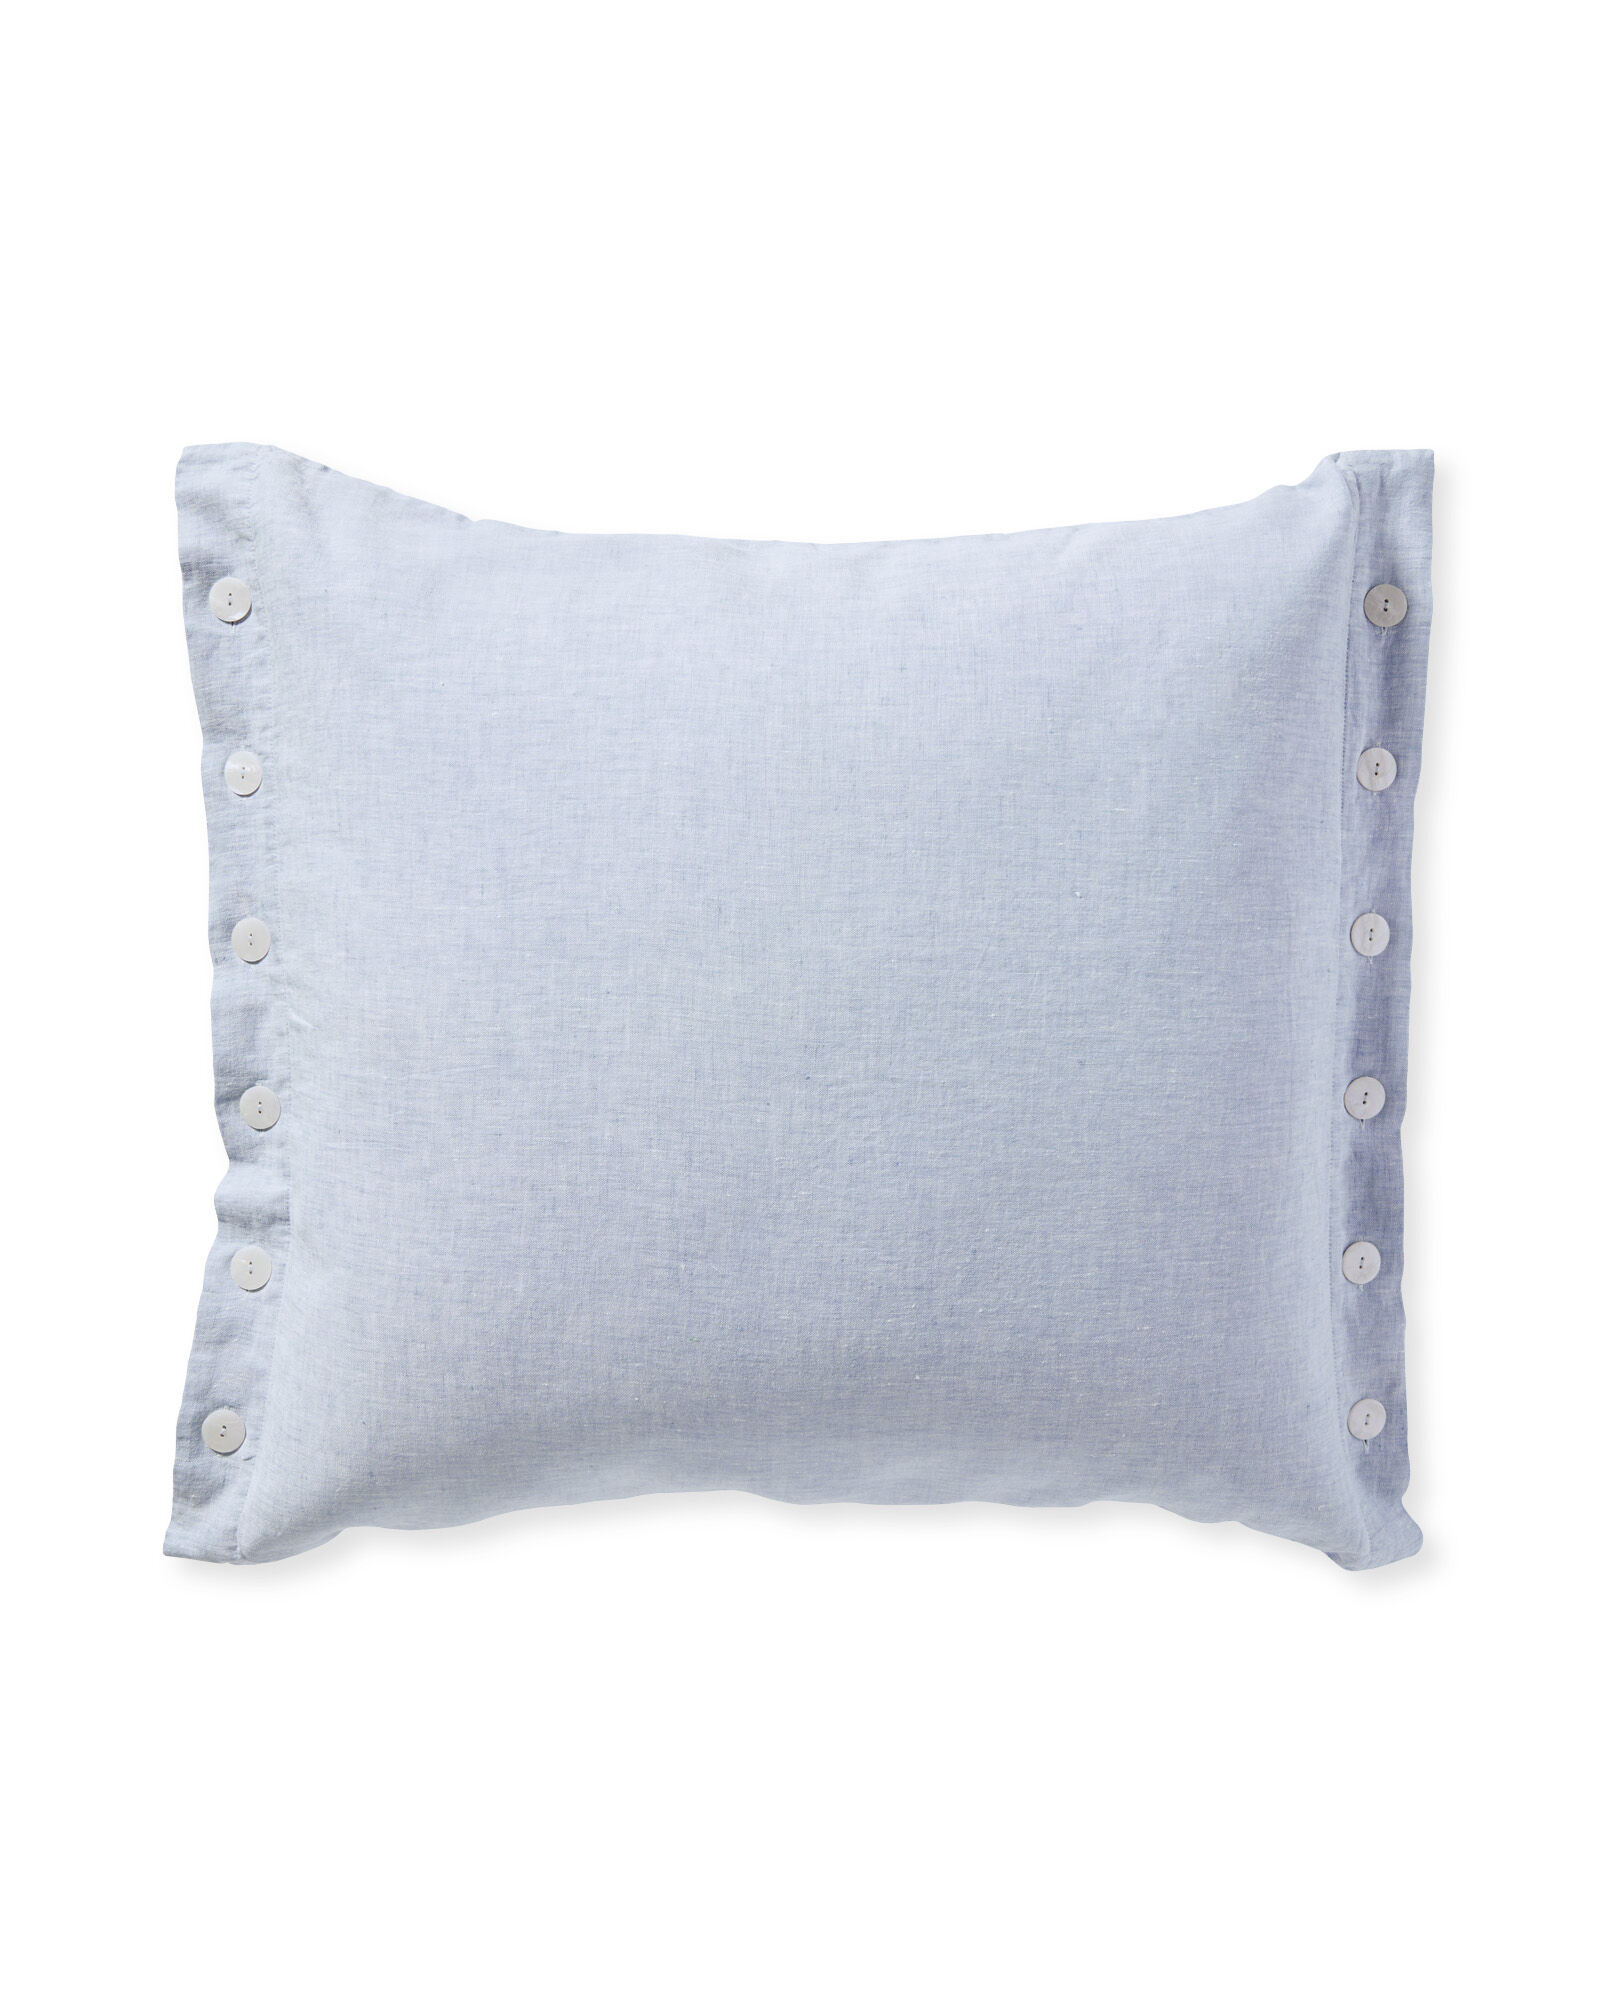 Boothbay Pillow Cover, Blue Chambray